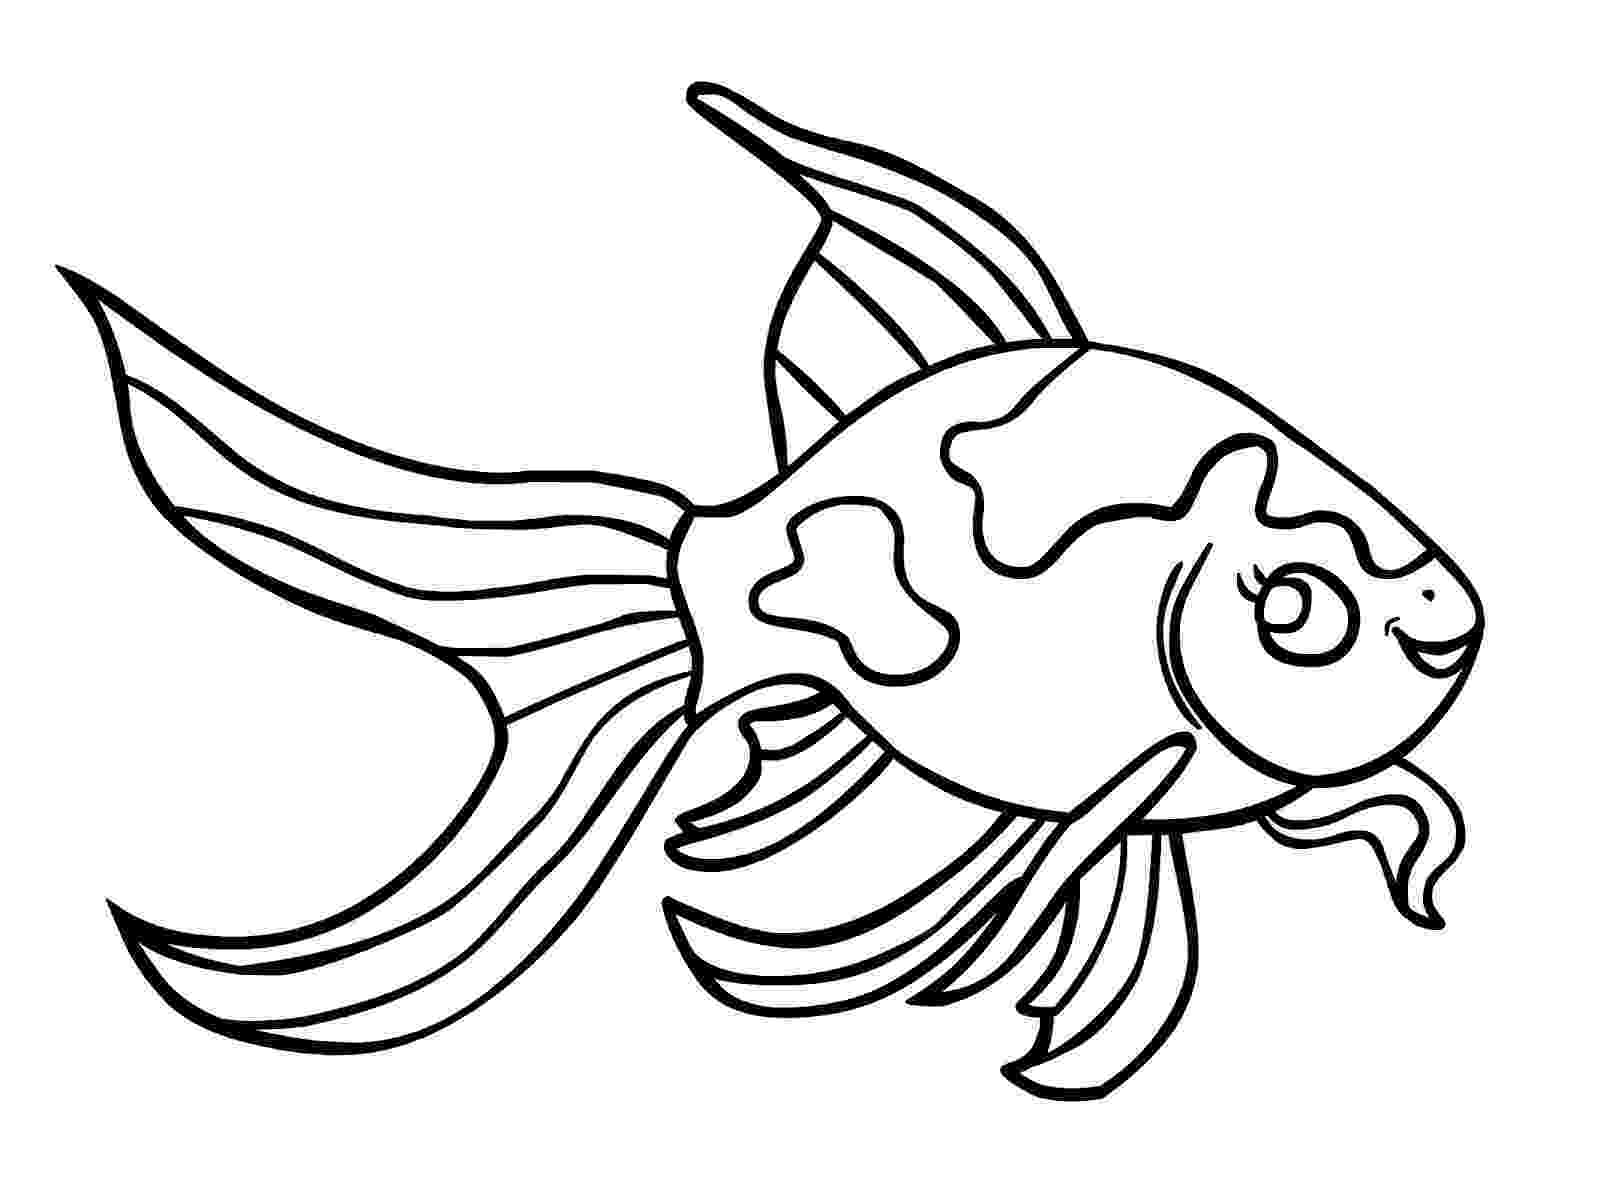 coloring picture fish color pages of fish bestappsforkidscom picture coloring fish